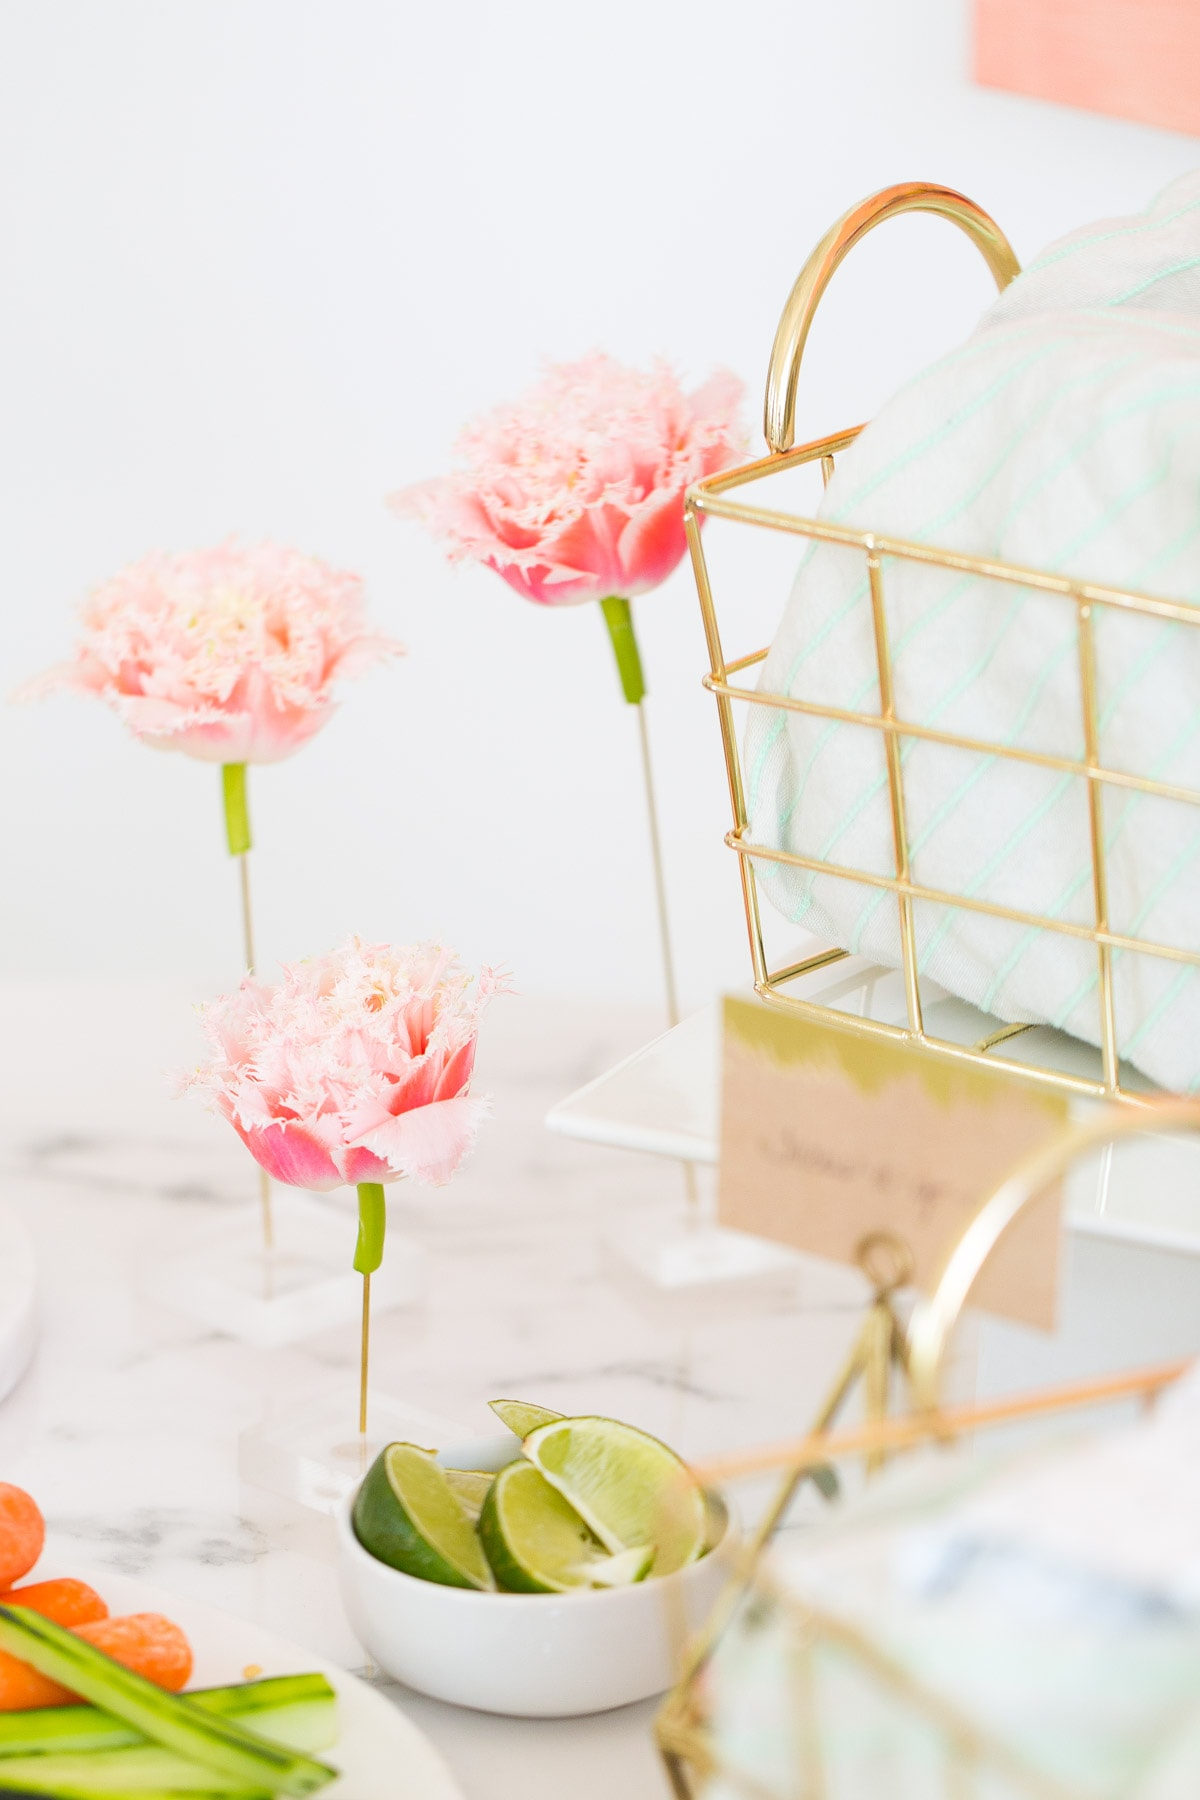 Garden flower bridal shower by top houston lifestyle blogger, Ashley Rose of Sugar and Cloth